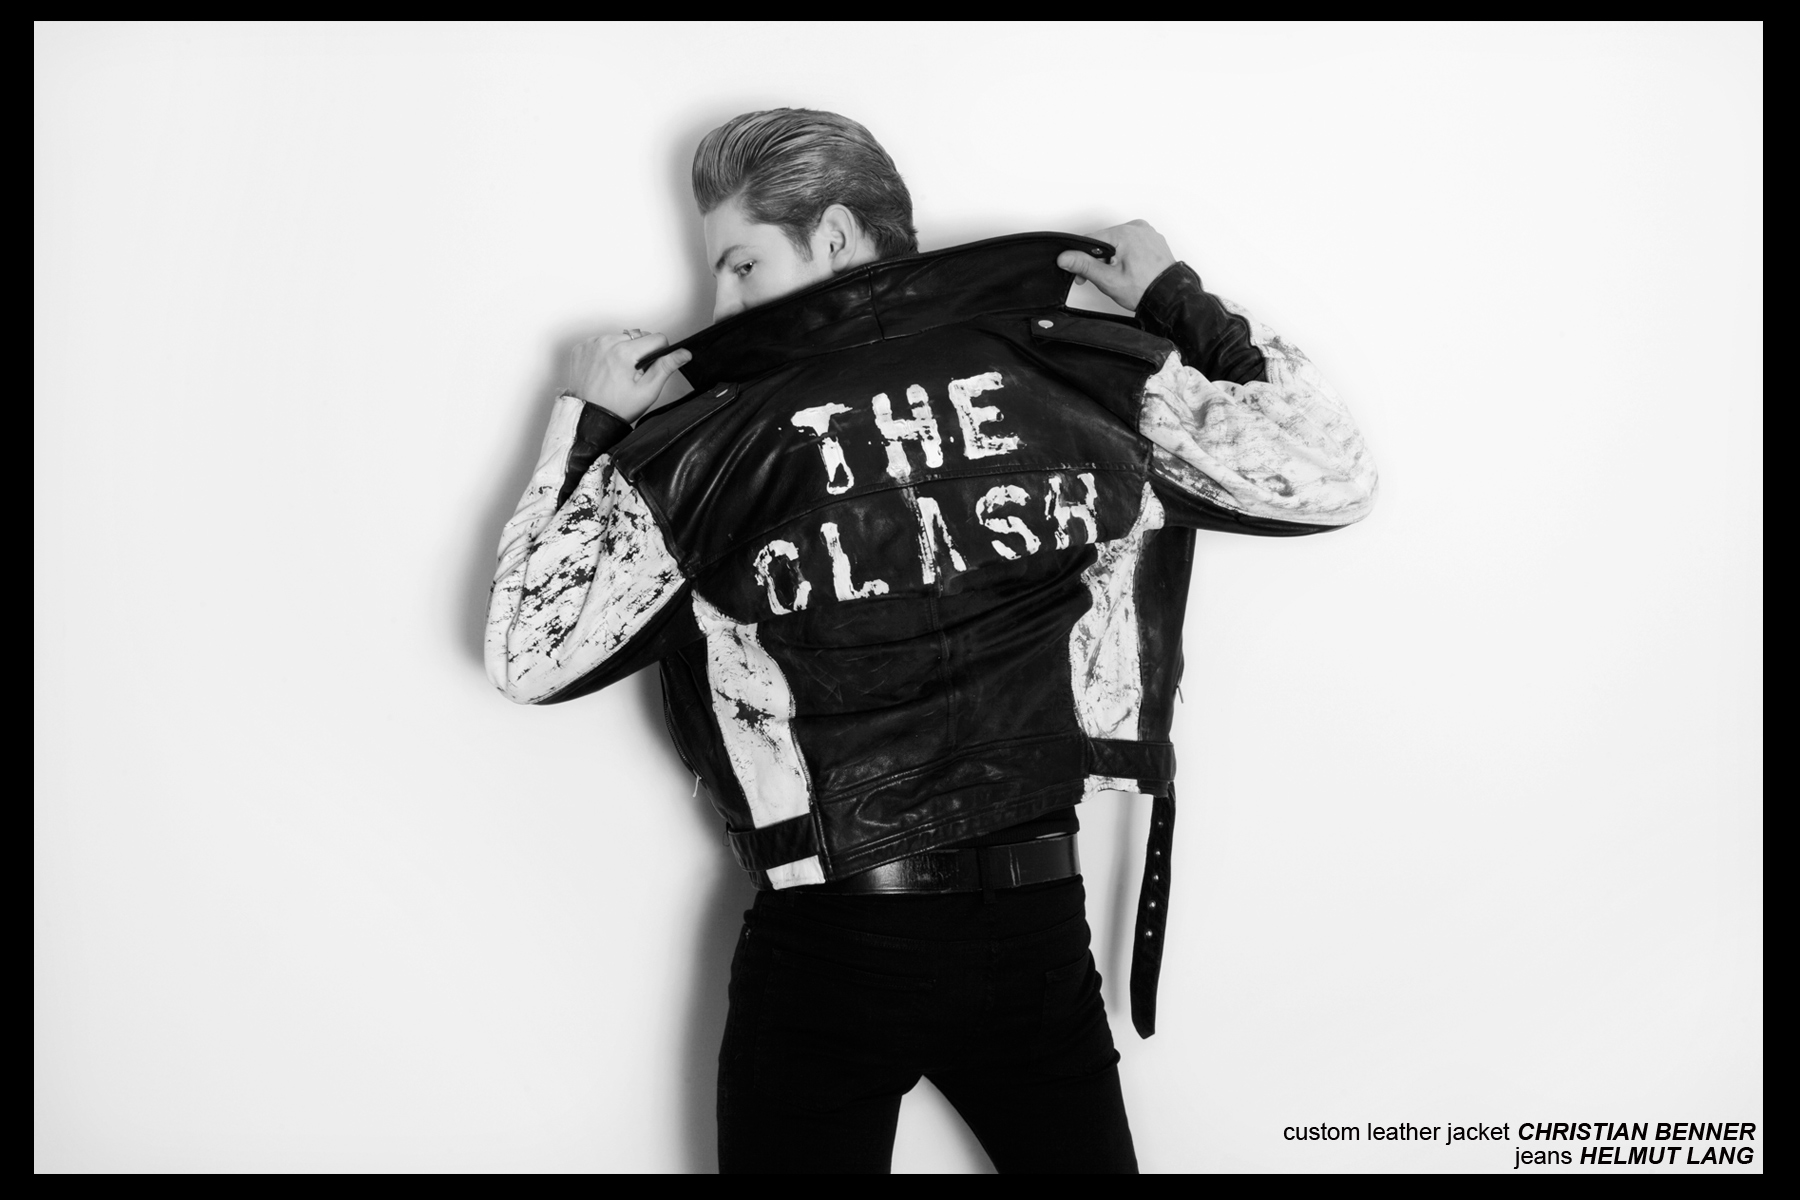 Clash custom leather jacket by Christian Benner for Ponyboy Magazine, photographed by Alexander Thompson. Worn by Soul Artist Management model Clancy Sigalet.